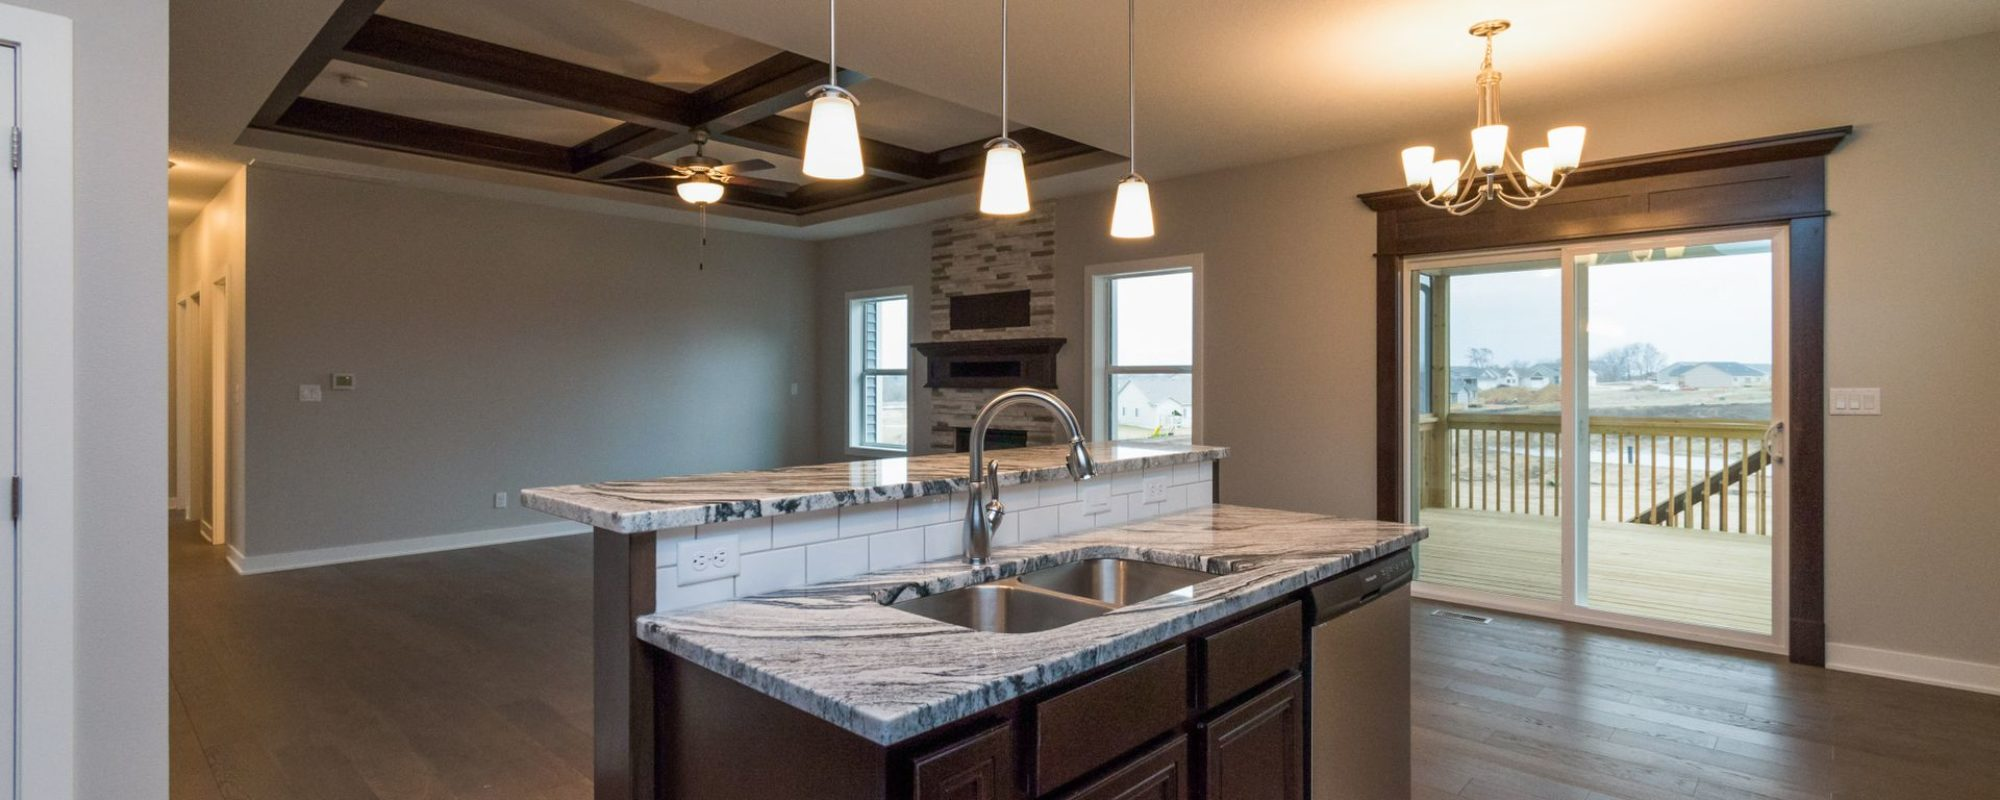 Homes For Sale In Marshalltown Ia